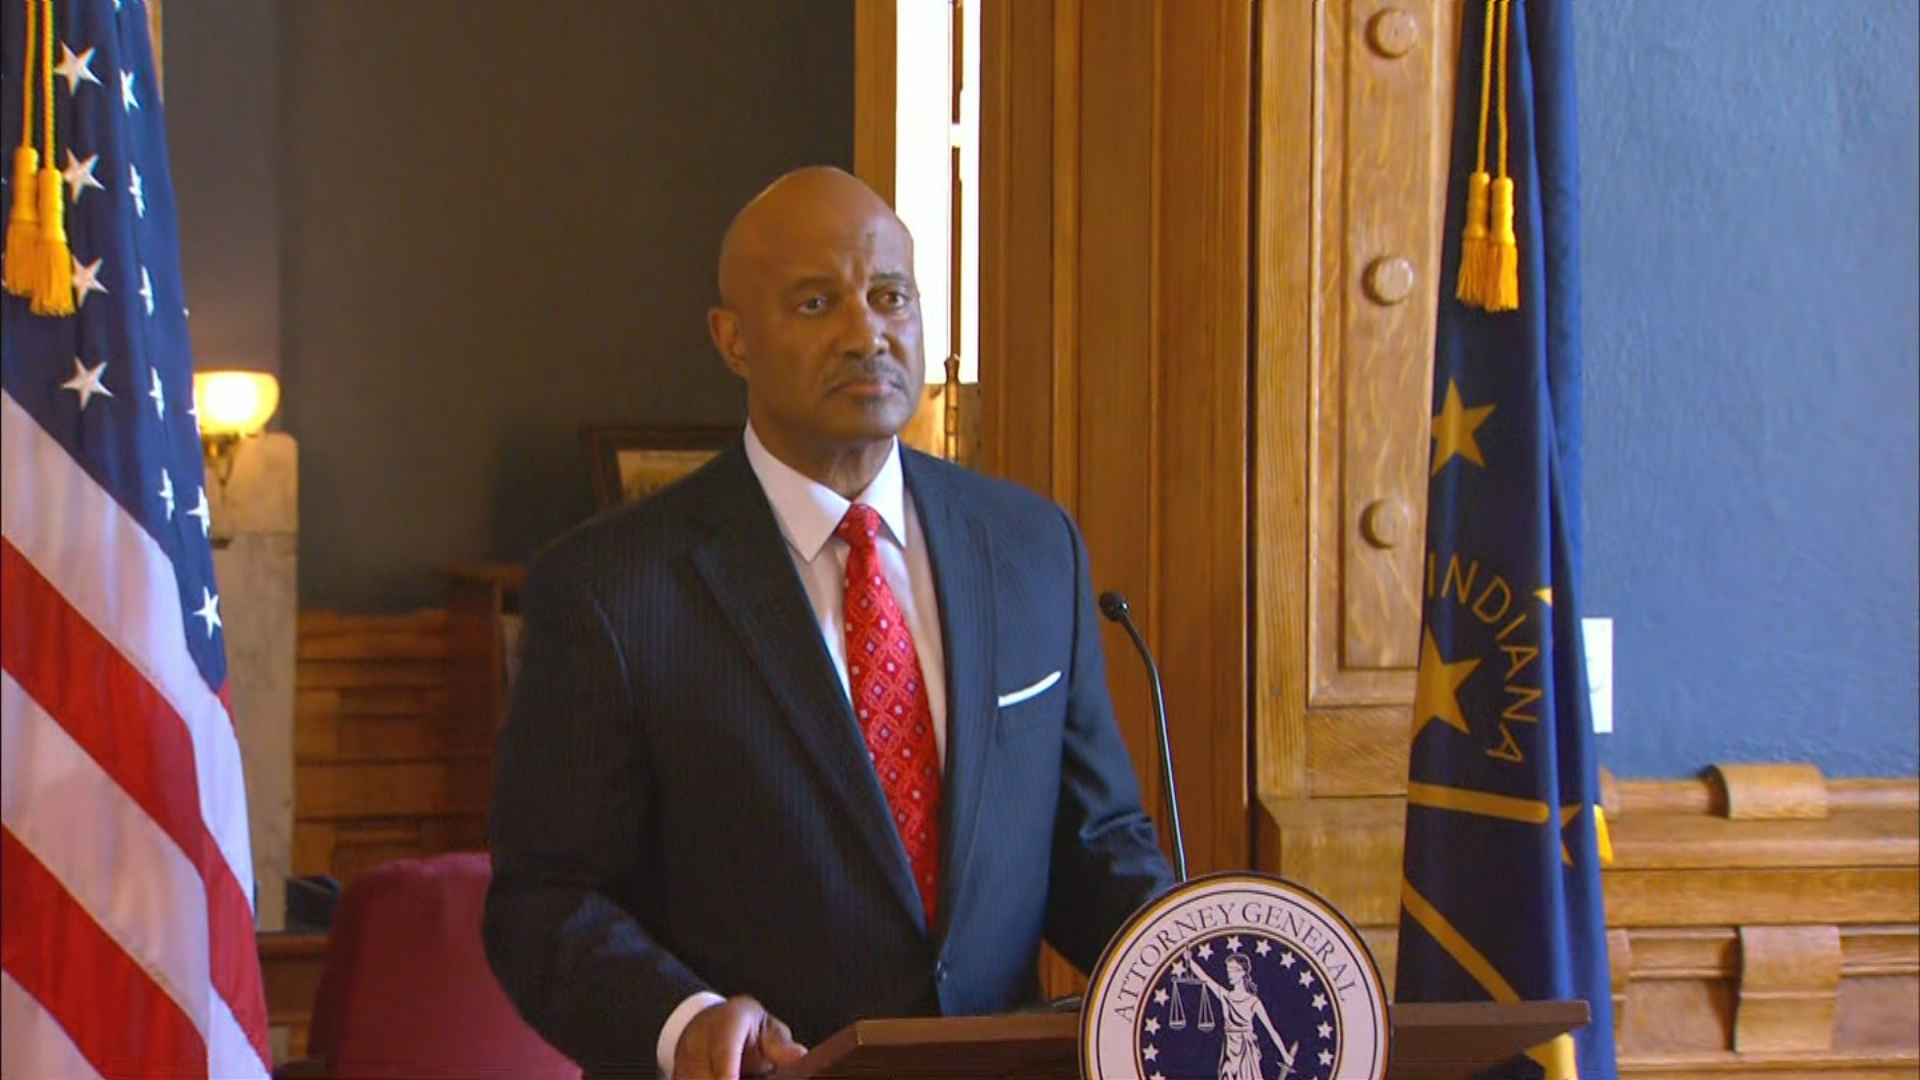 Indiana lawmaker seeks investigation into Attorney General Curtis Hill